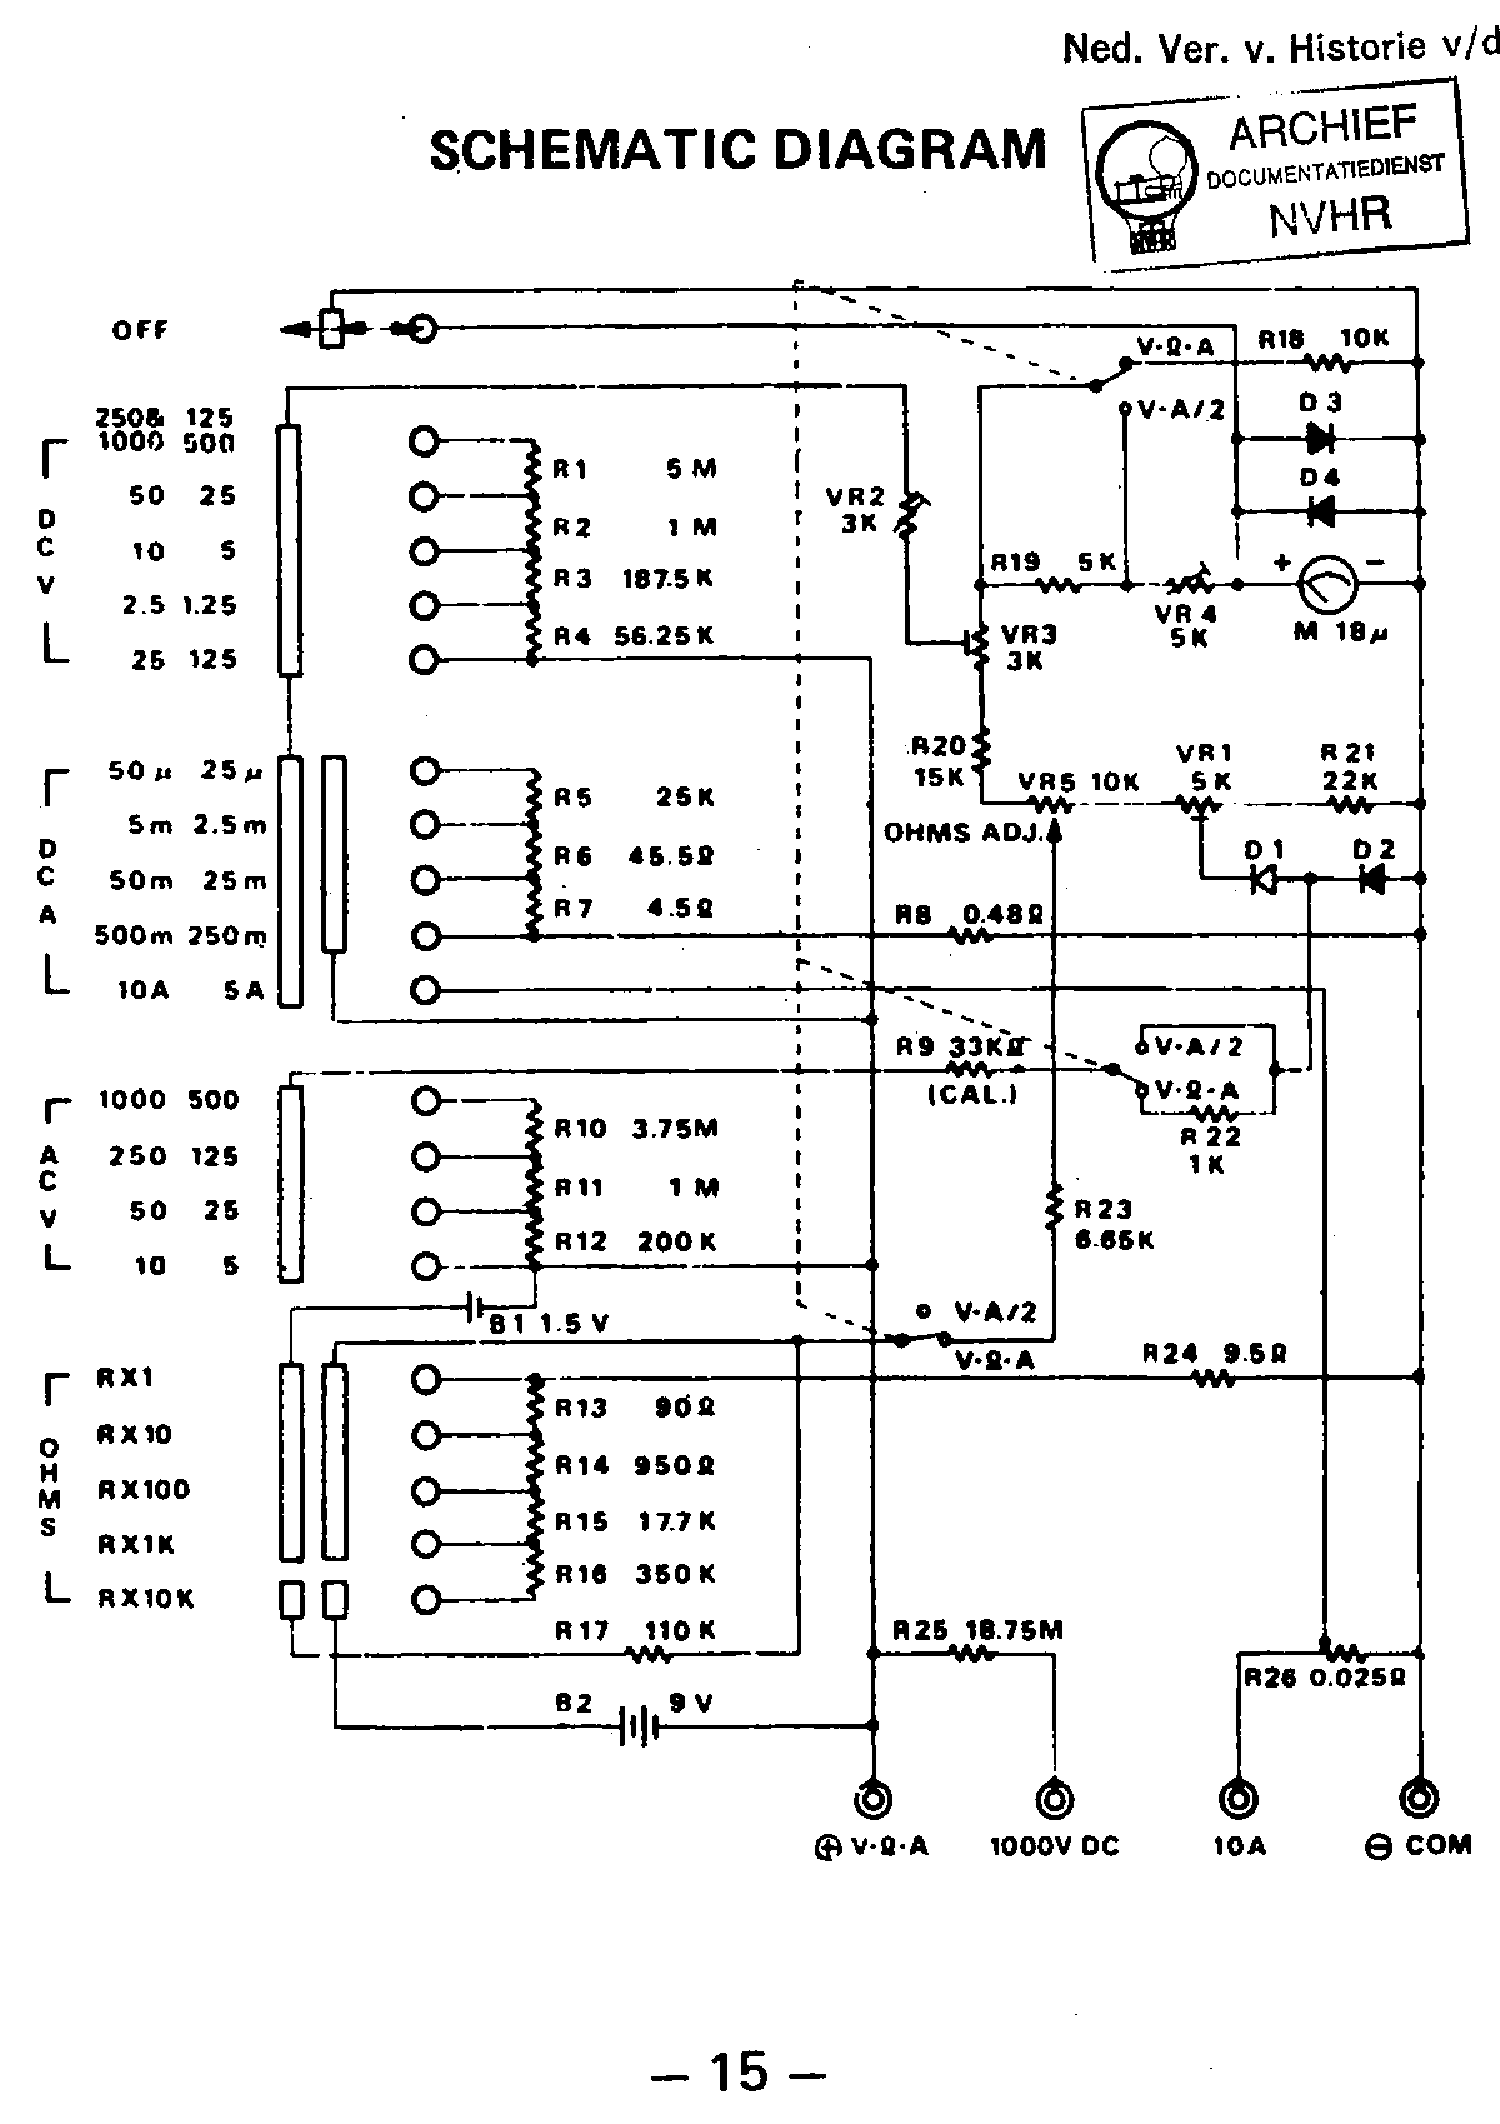 micronta_22 204_analog mm_sch.pdf_1 micronta 22 204 analog mm sch service manual download, schematics  at gsmx.co